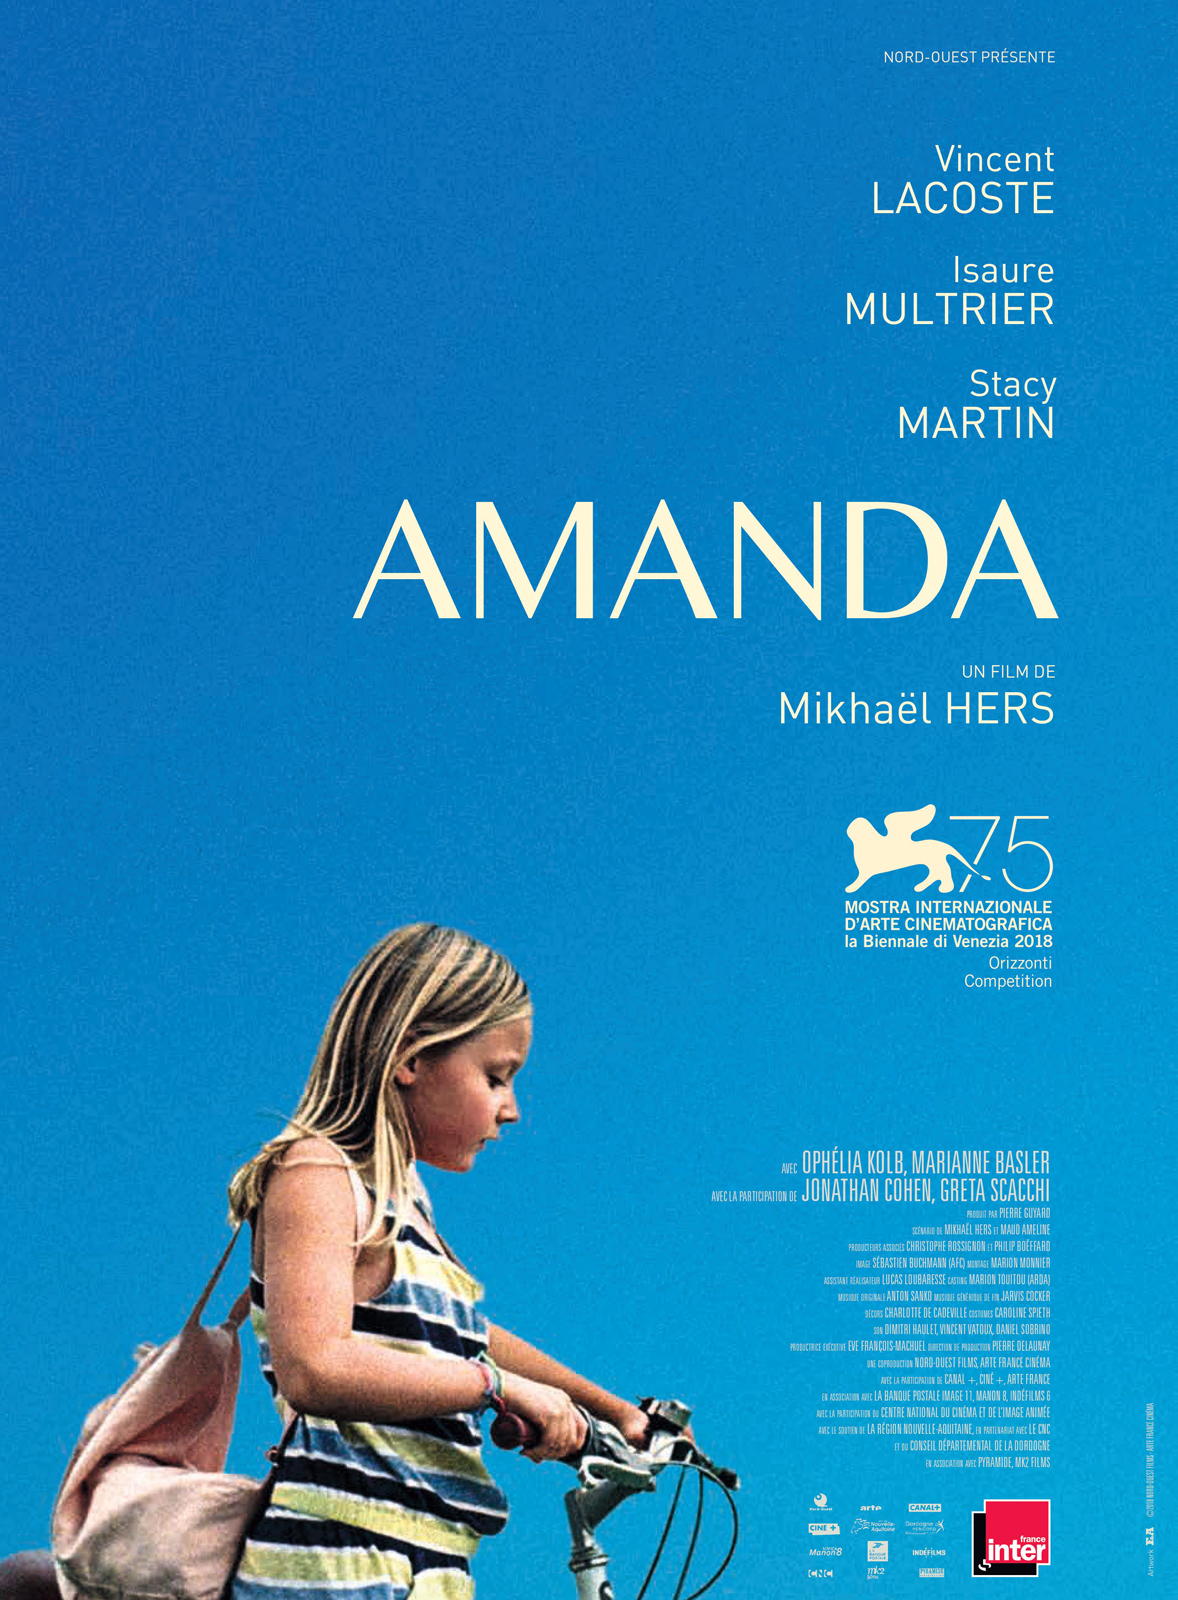 Amanda critique film avis Isaure Multier Vincent Lacoste photo